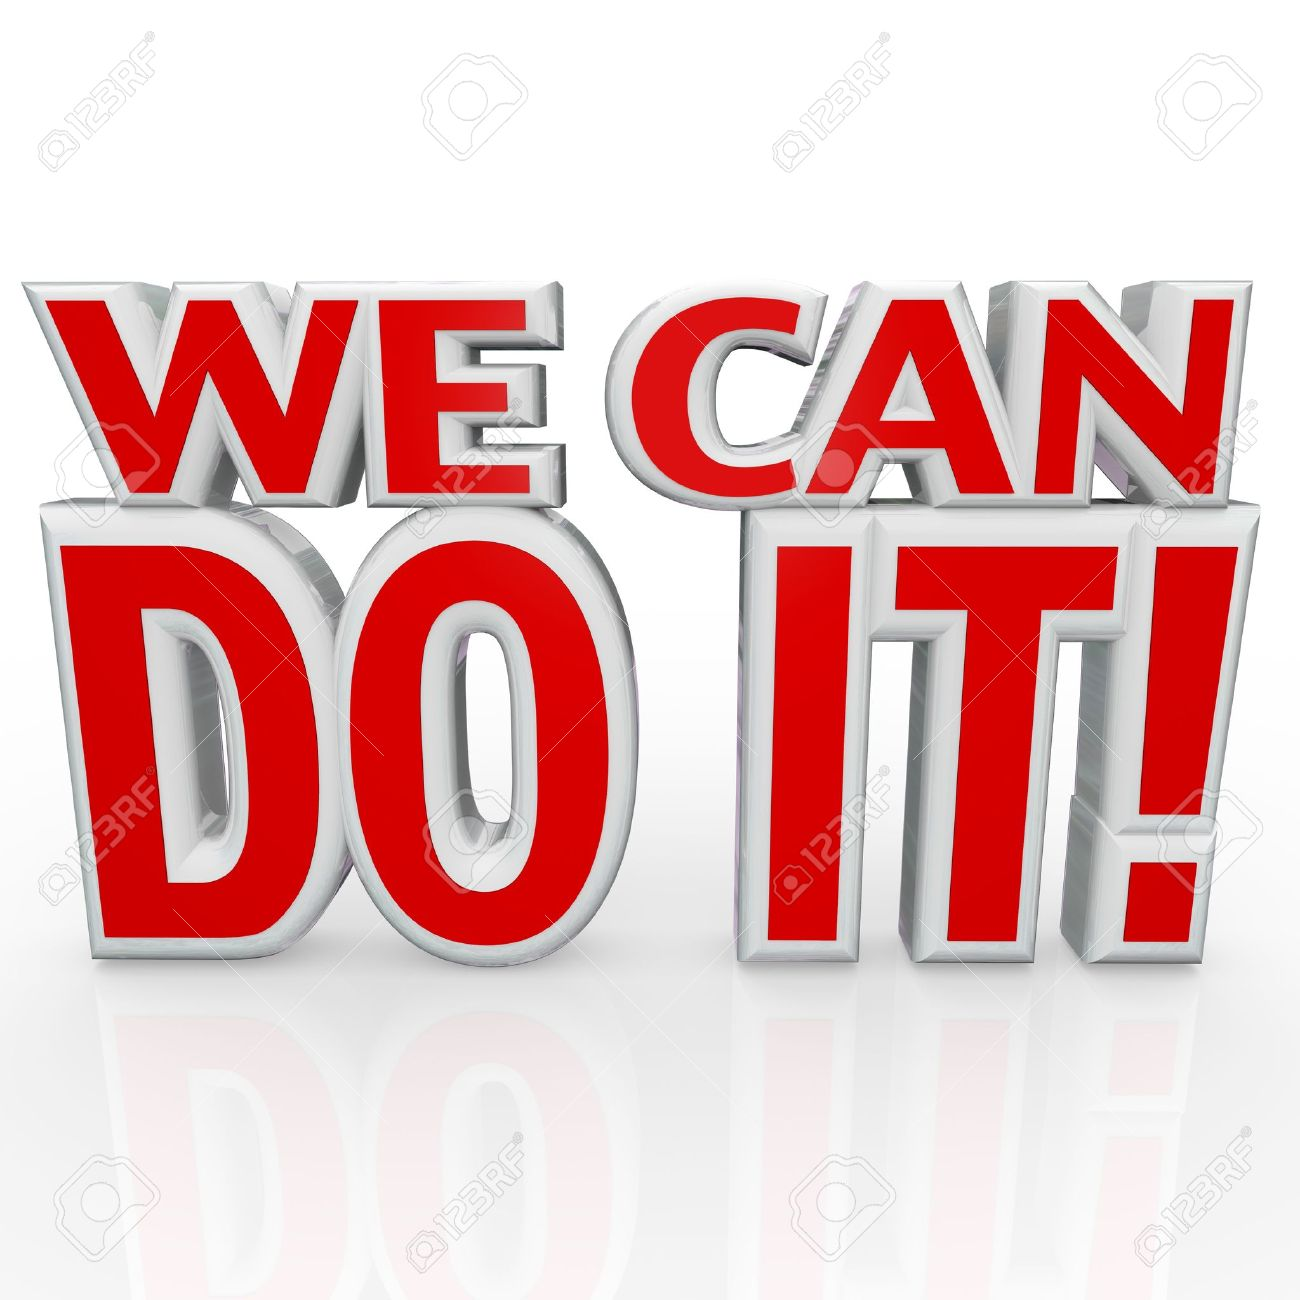 the words we can do it in red 3d letters to symbolize confidence